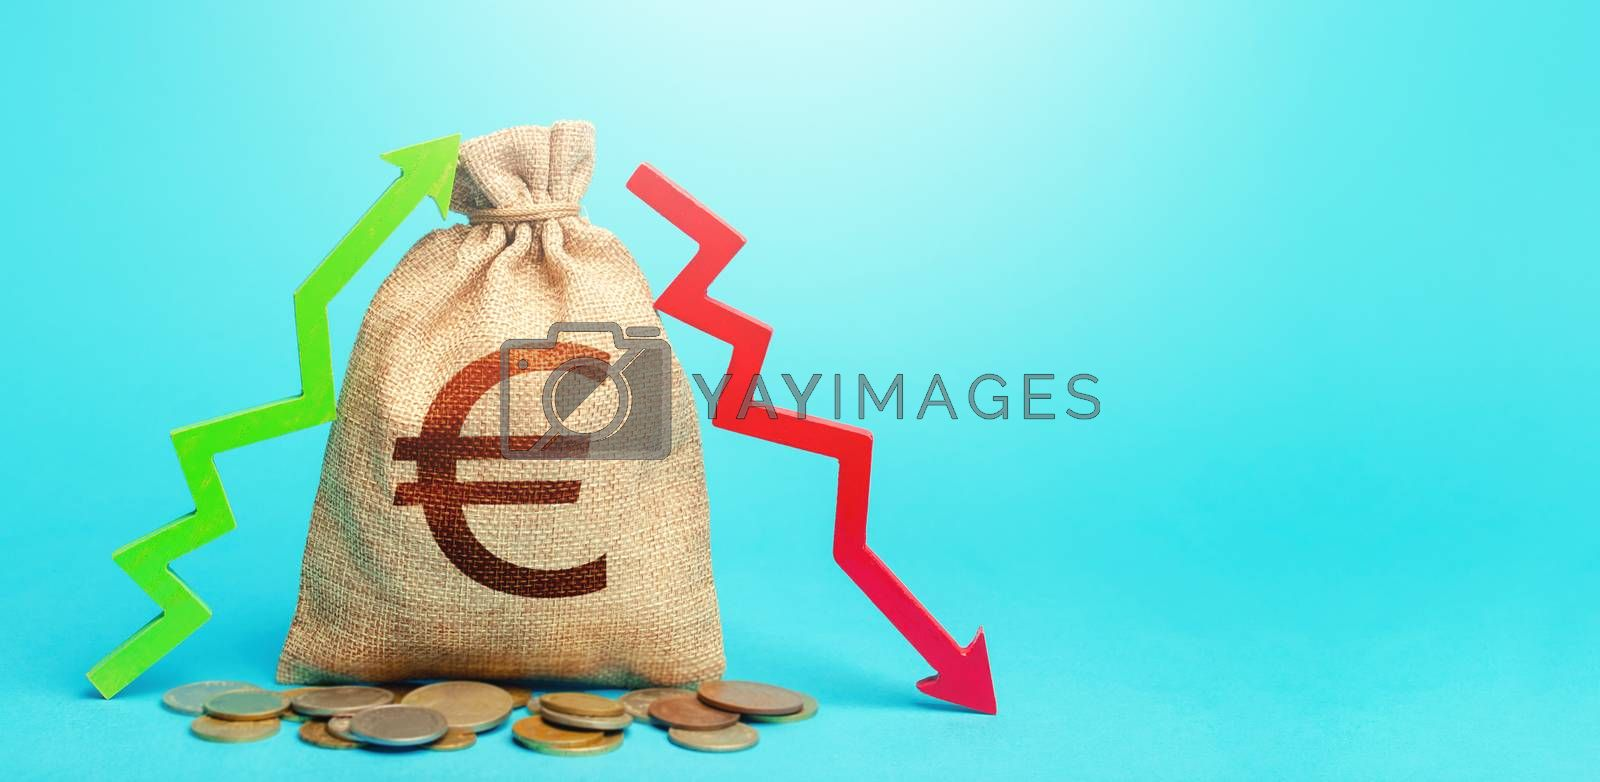 Euro money bag and two arrows of profit loss. Income expense concept. Debit and credit. Capital movement. Budget implementation. Deposits or lending in banks. Analysis financial flows. Trade balance.